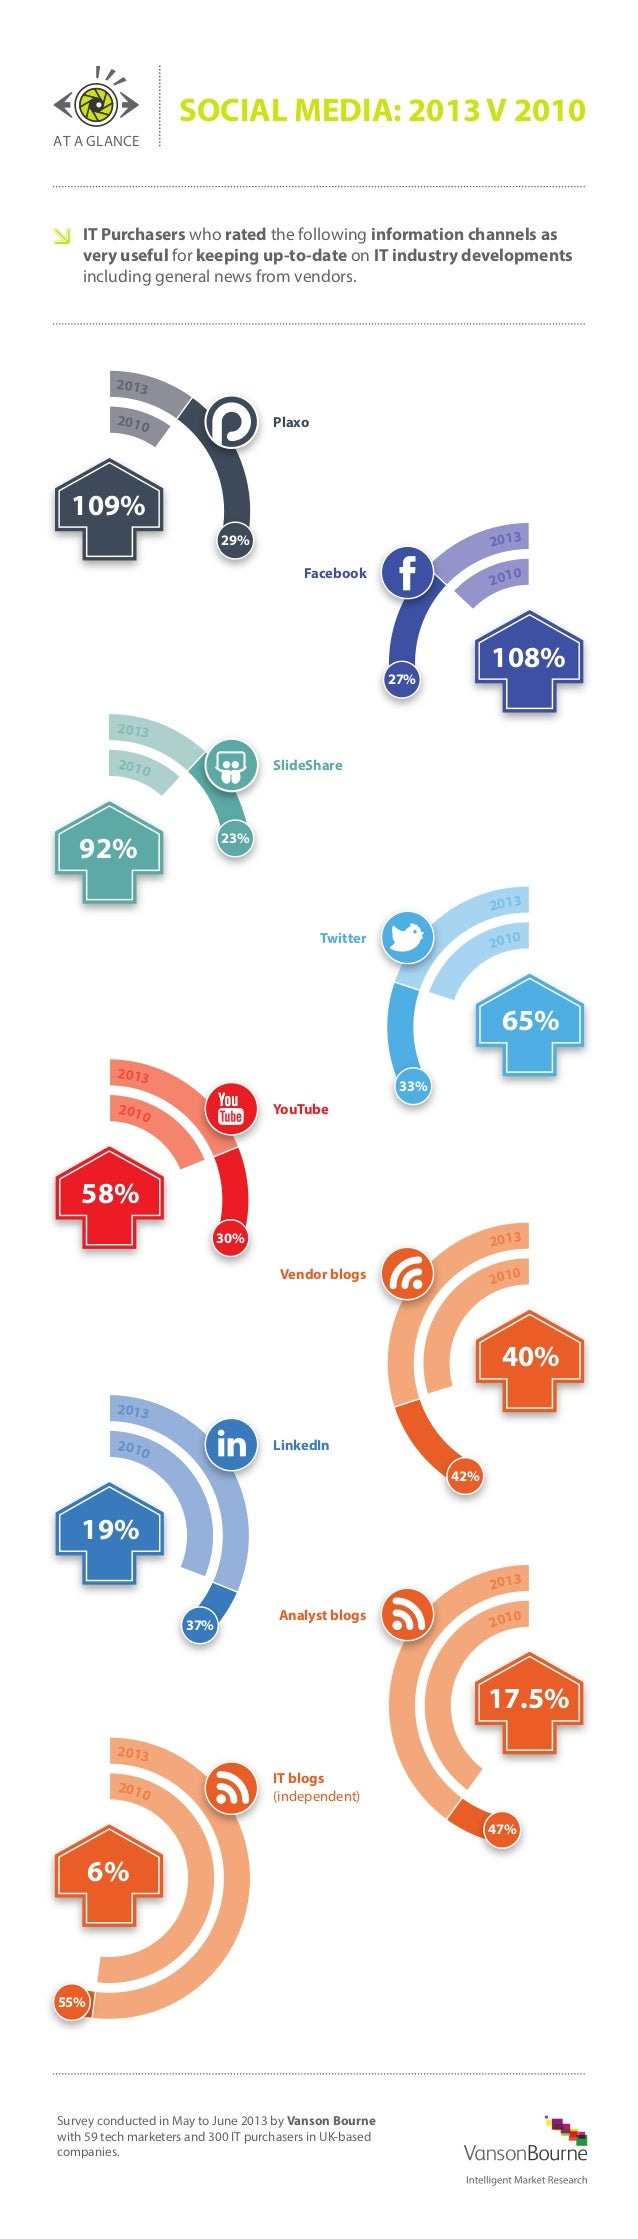 SOCIAL MEDIA: 2013 V 2010 AT A GLANCE  IT Purchasers who rated the following information channels as very useful for keepi...